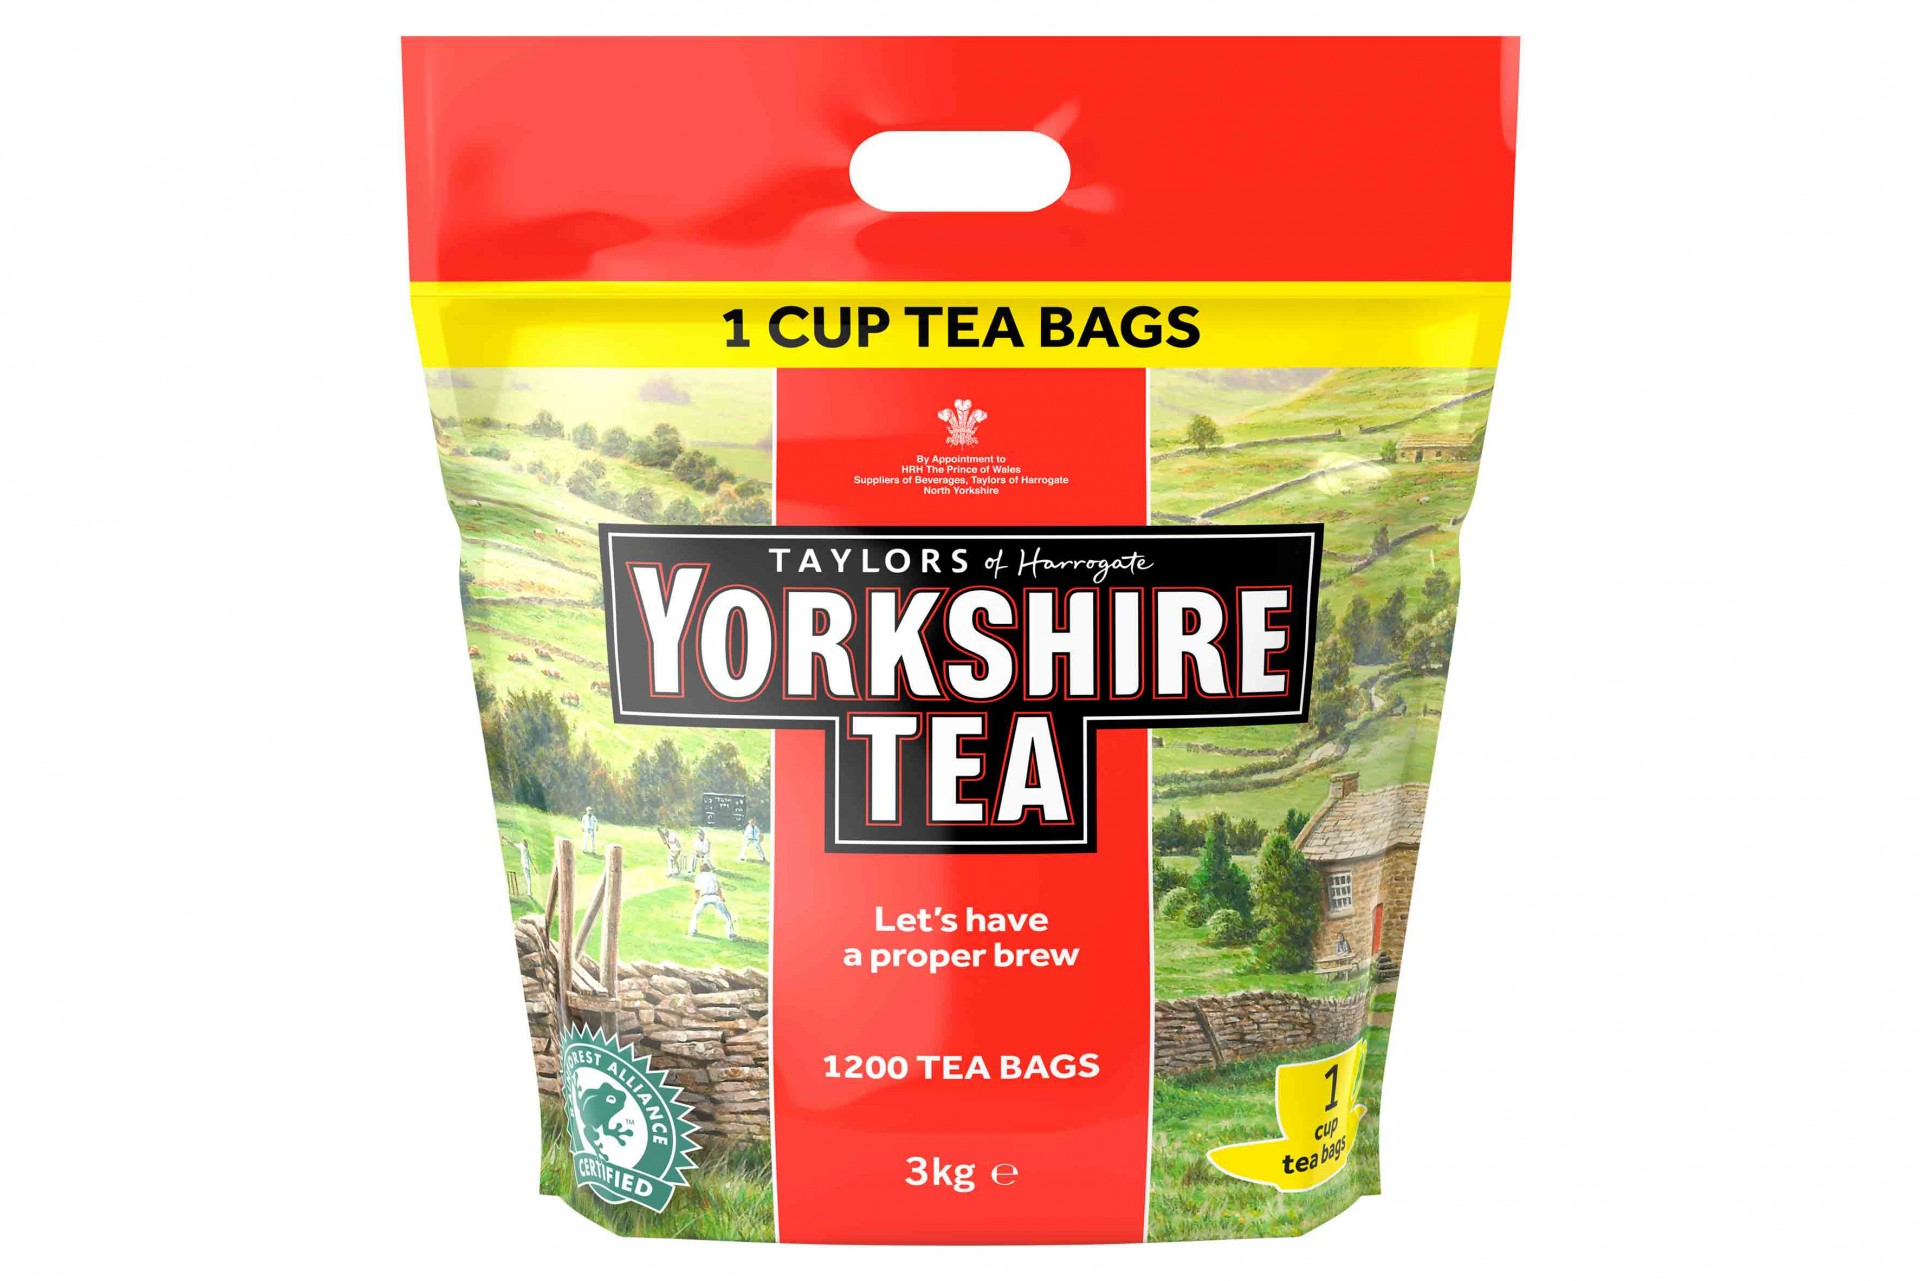 Yorkshire Tea One Cup Tea Bags